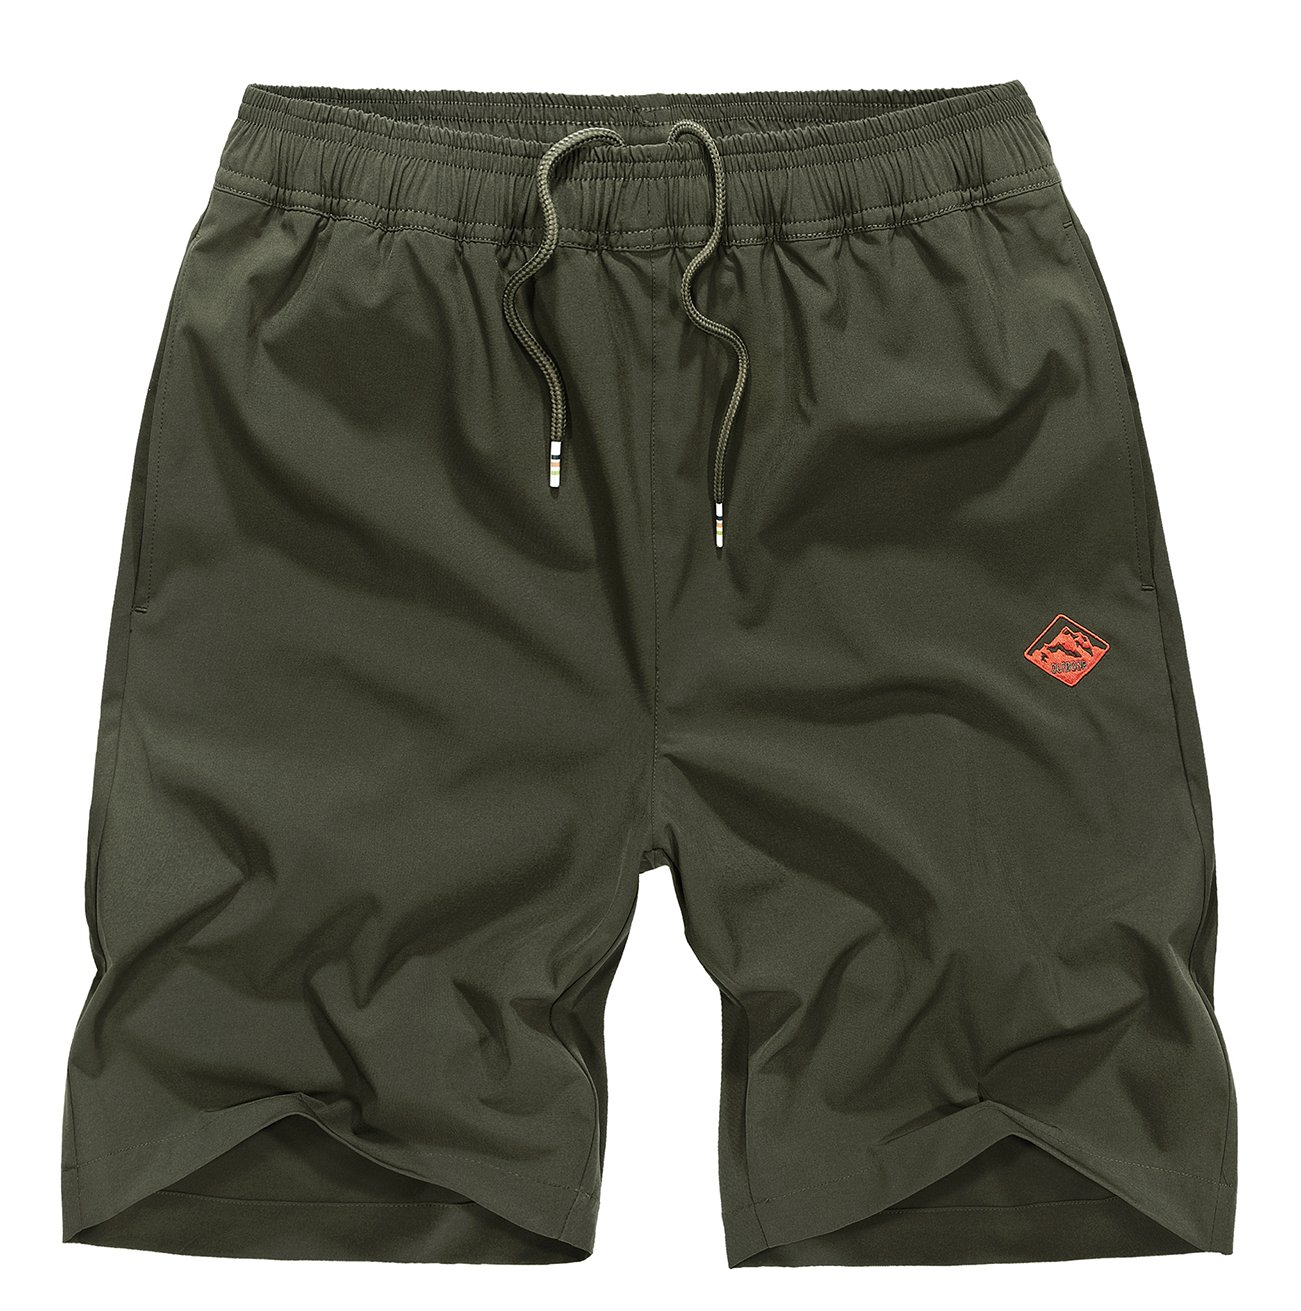 exeke Outdoor Shorts Lightweight 252 Army